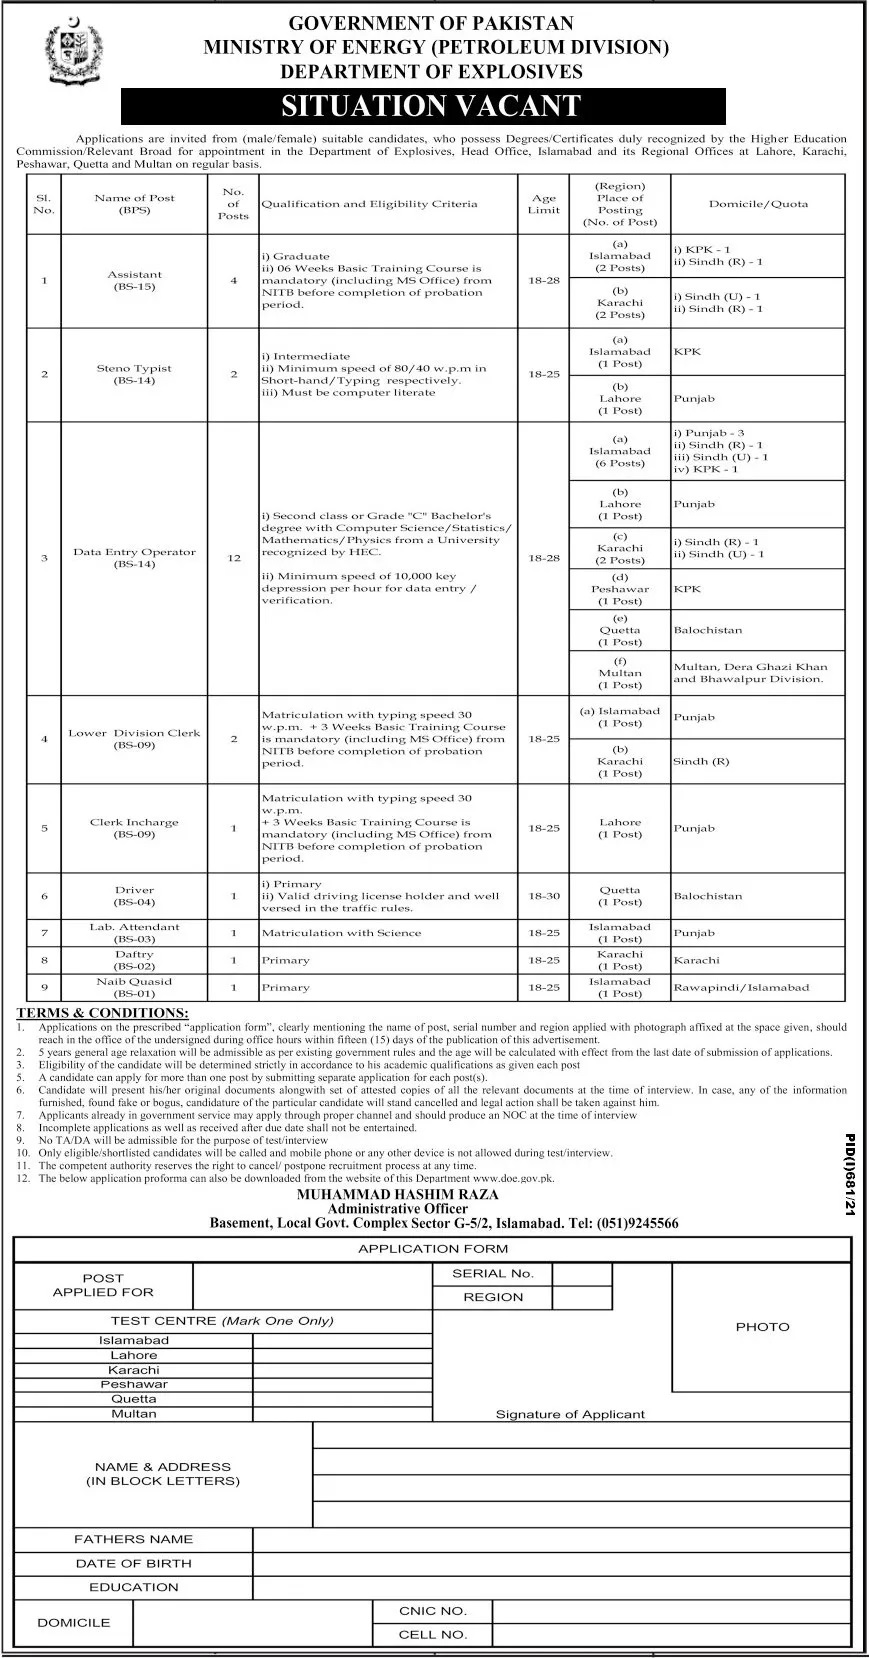 Latest Govt Jobs in Pakistan At Ministry of Energy Petroleum Division August 2021 h